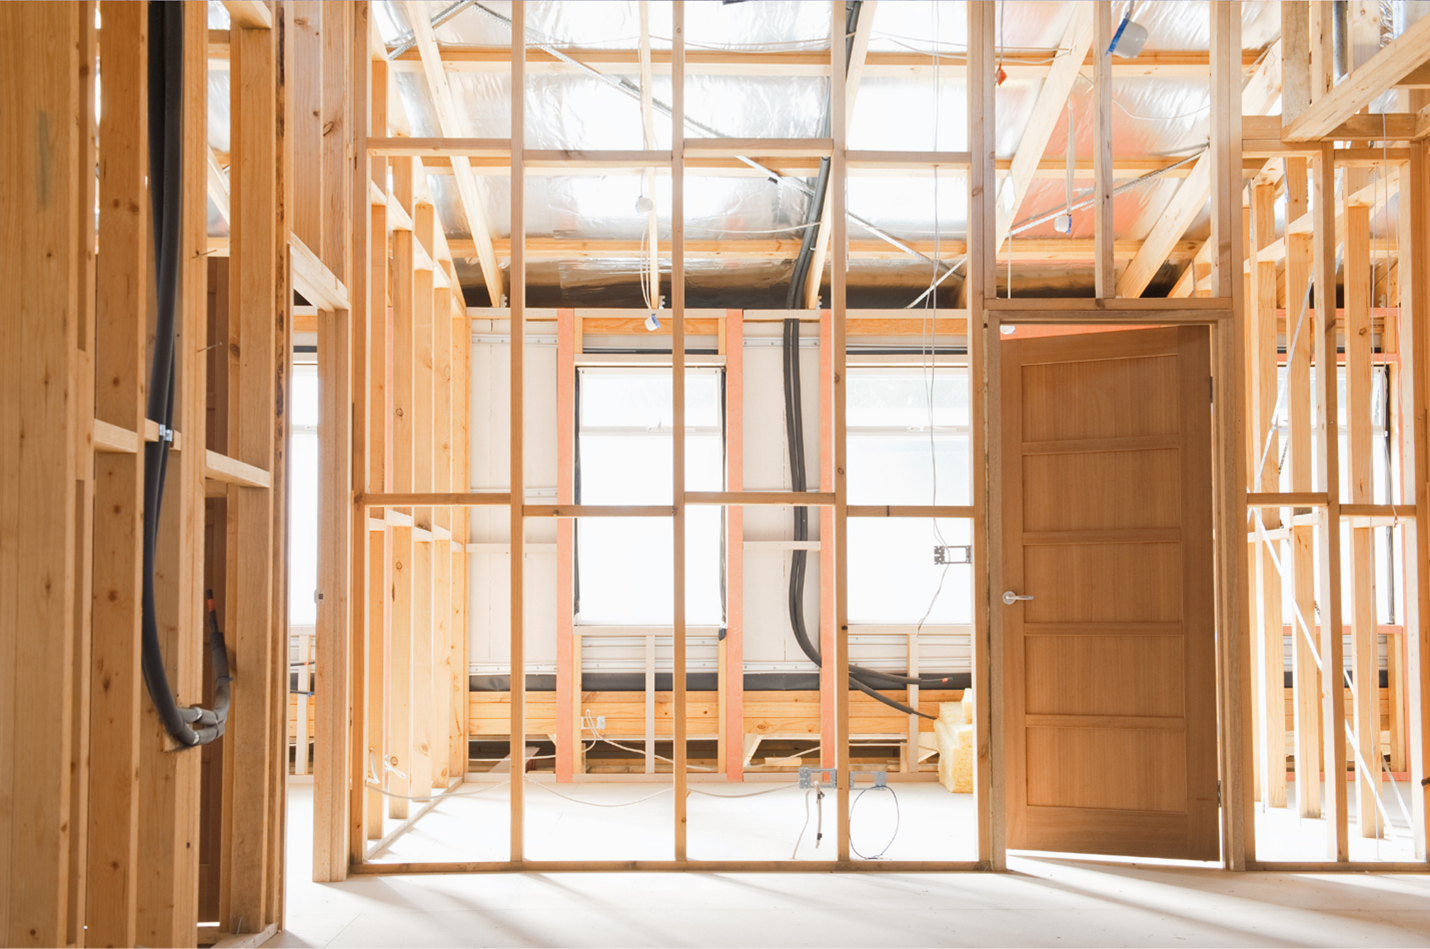 The Beginner's Guide to Finding a Fix and Flip Contractor